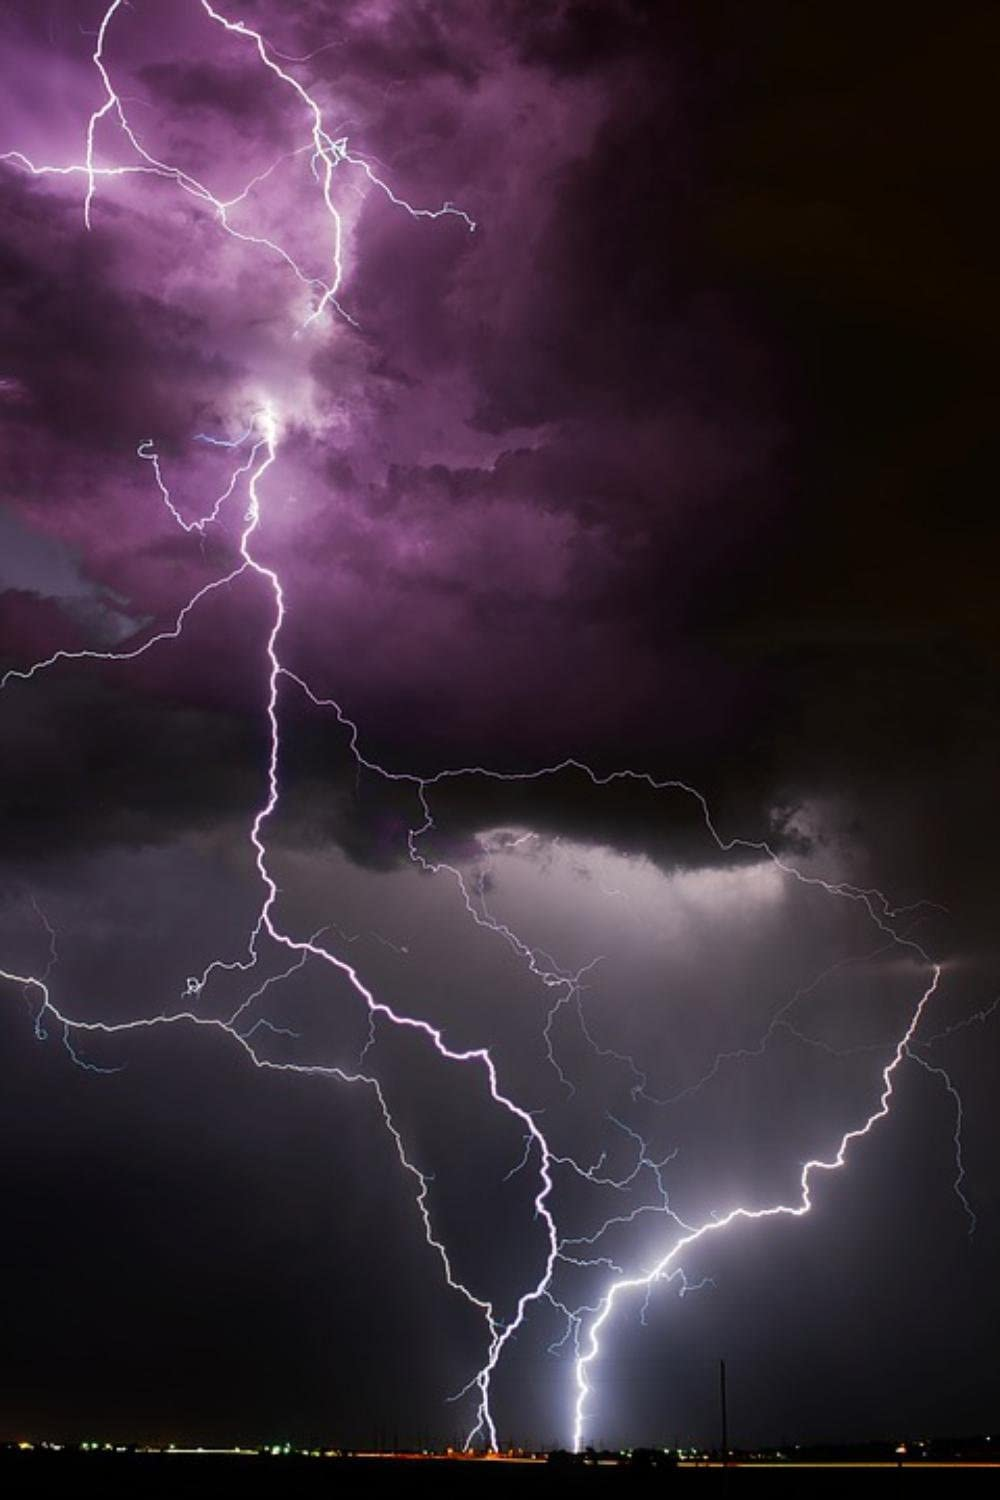 Gifts Delight Laminated 24x36 inches Poster: Colorado Storm Lightning Weather Thunderstorm Night Nighttime Evening Strike Electrical Nature Outdoors Sky Cloud Rain